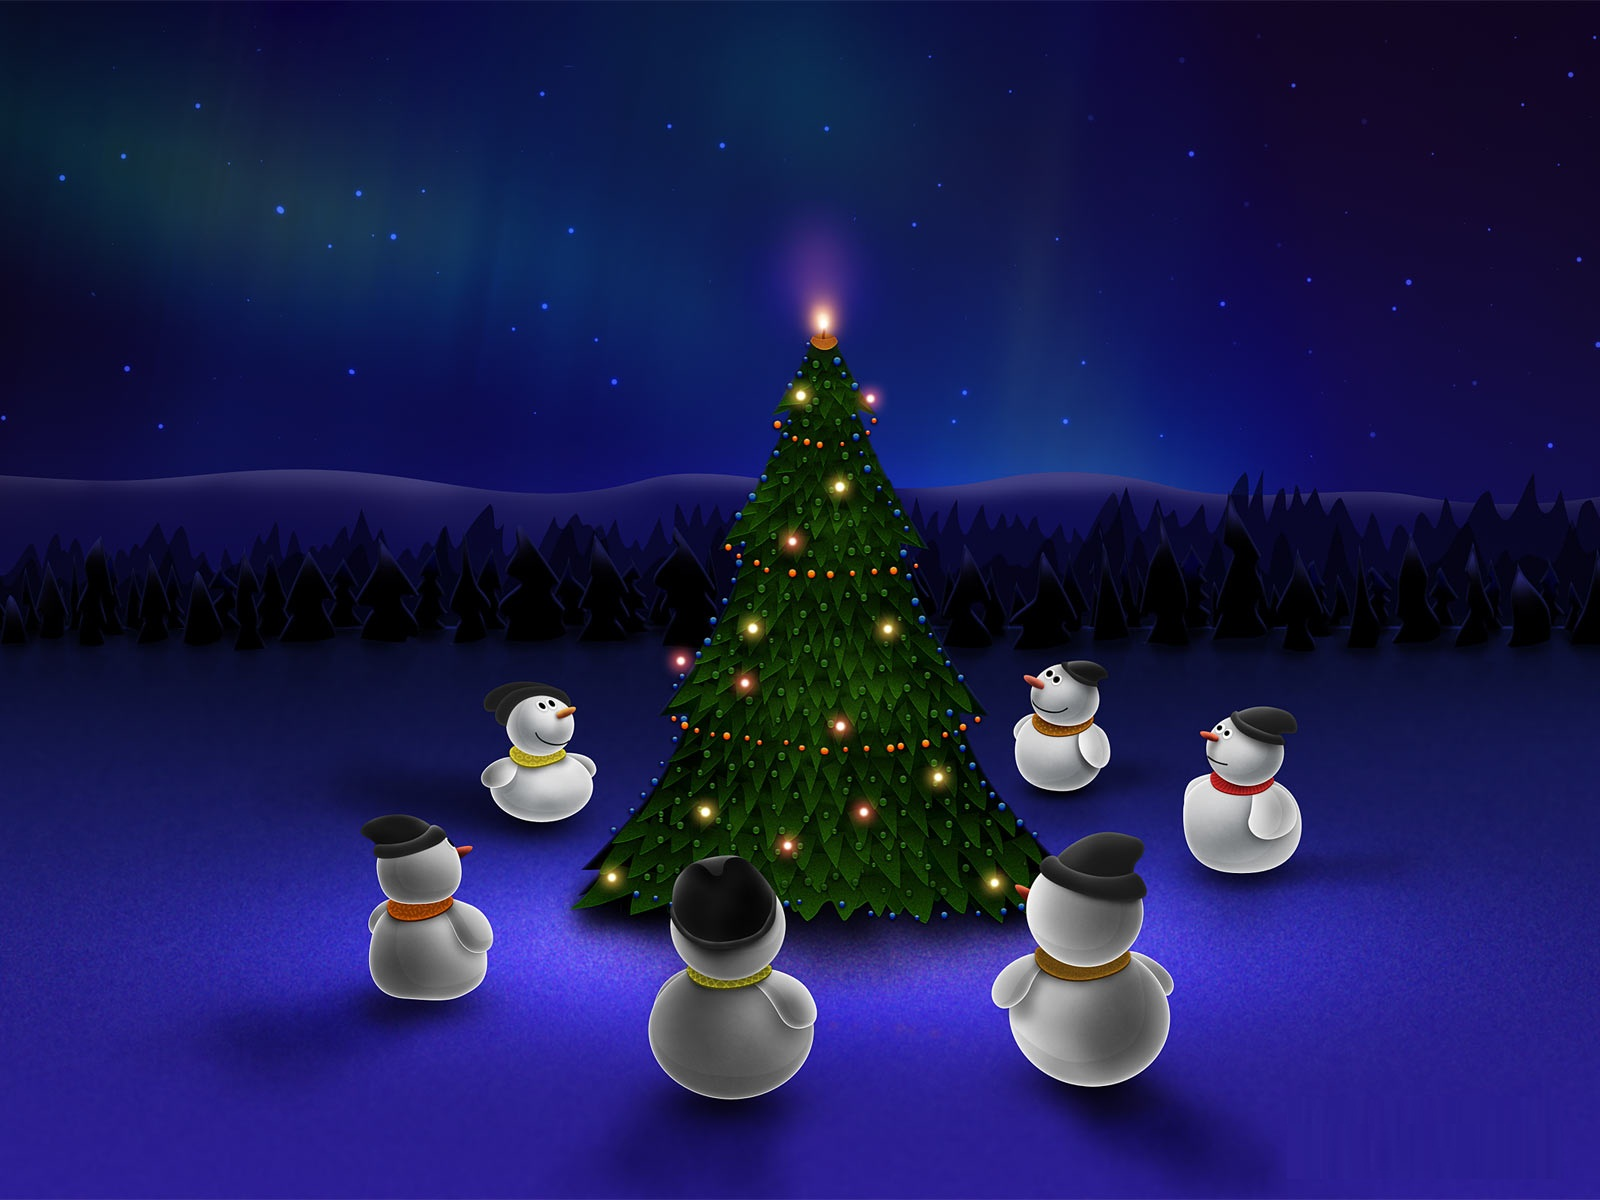 47+] Christmas Live Wallpaper for Computer on WallpaperSafari